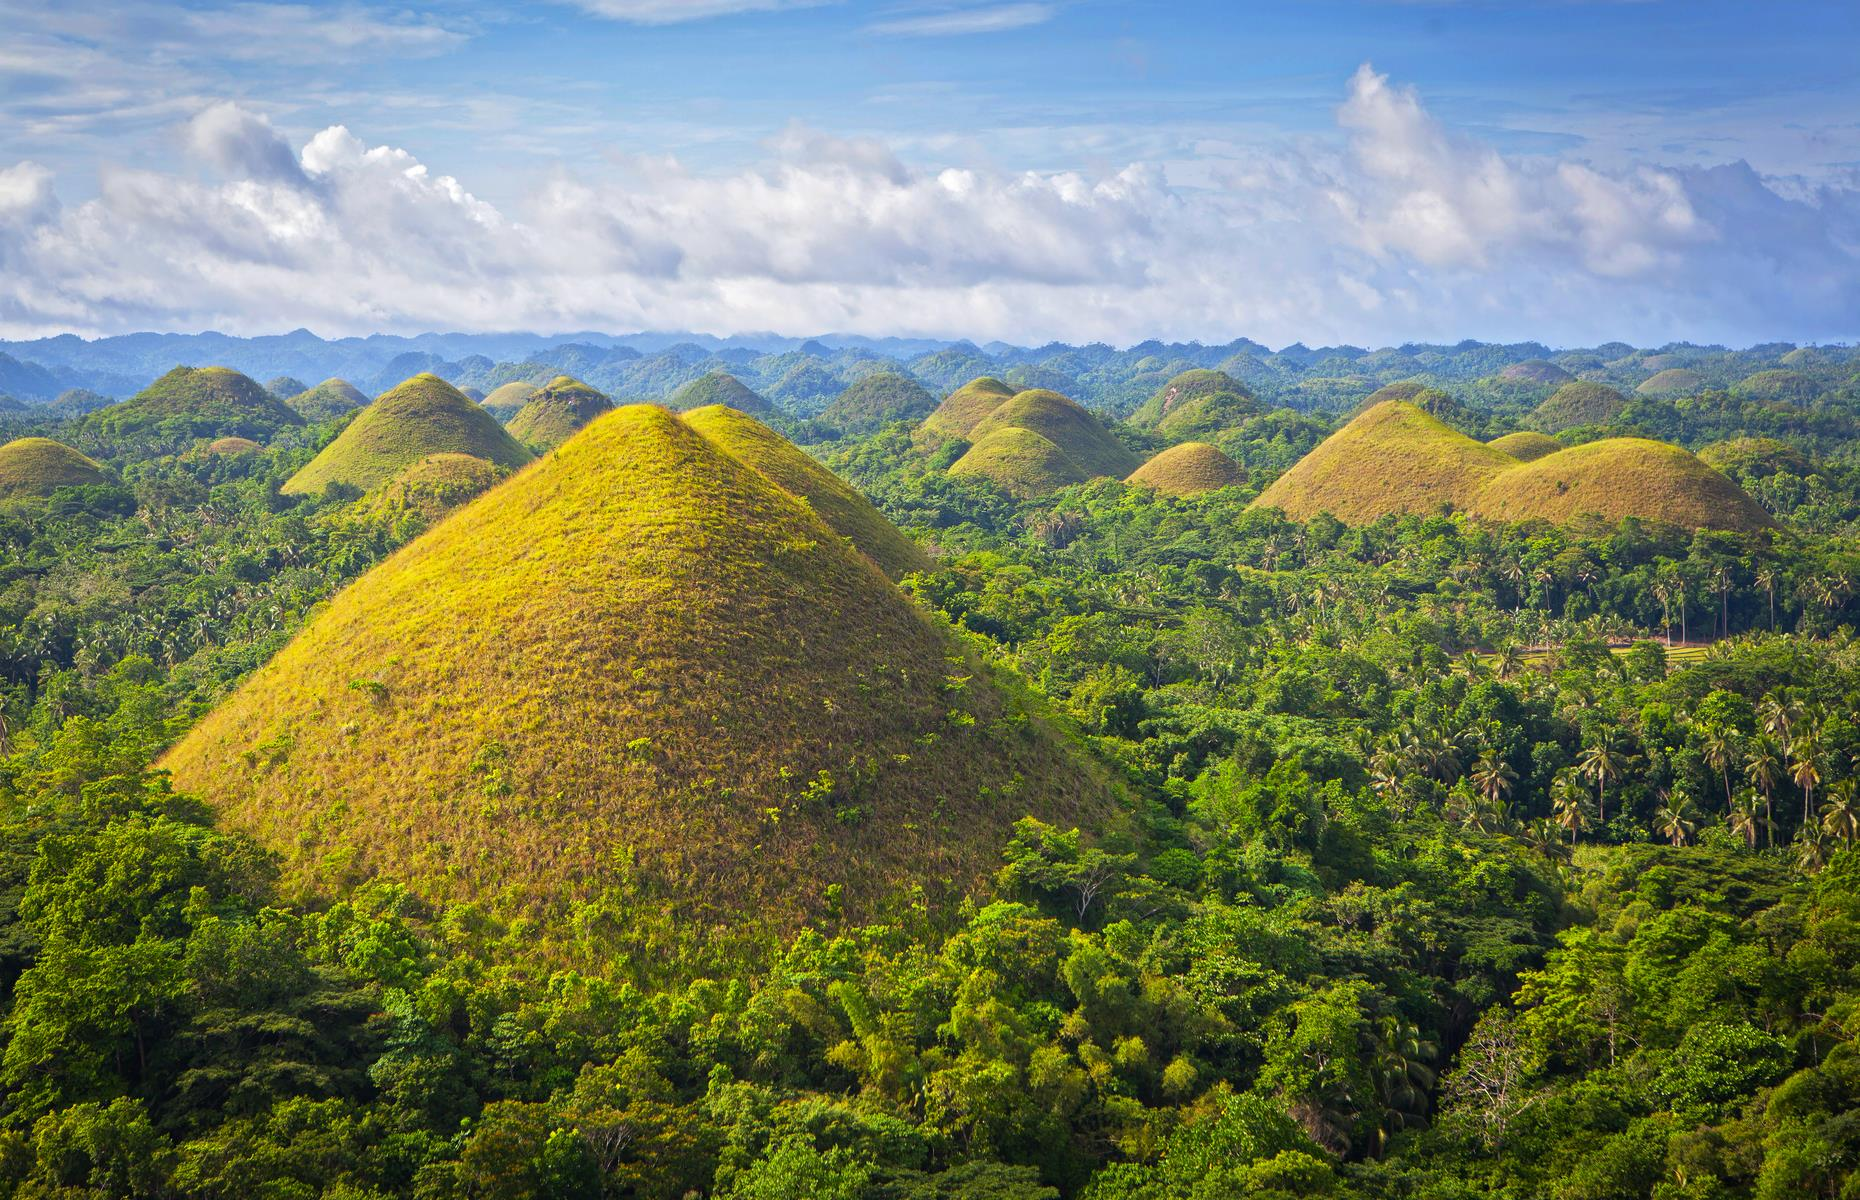 Slide 31 of 35: The Philippines' conical Chocolate Hills – some of which soar to 394 feet (120m) – are another natural wonder oft explained by magic. One legend involves a pair of squabbling giants, who launched mud and boulders at one another until they were exhausted. Their tiredness led them to forget their bickering and the havoc they'd wrought too. They left behind the towering Chocolate Hills and wandered off into the sunset. Another story claims the hills are the dried tears of an amorous giant, who was mourning the death of his mortal love.